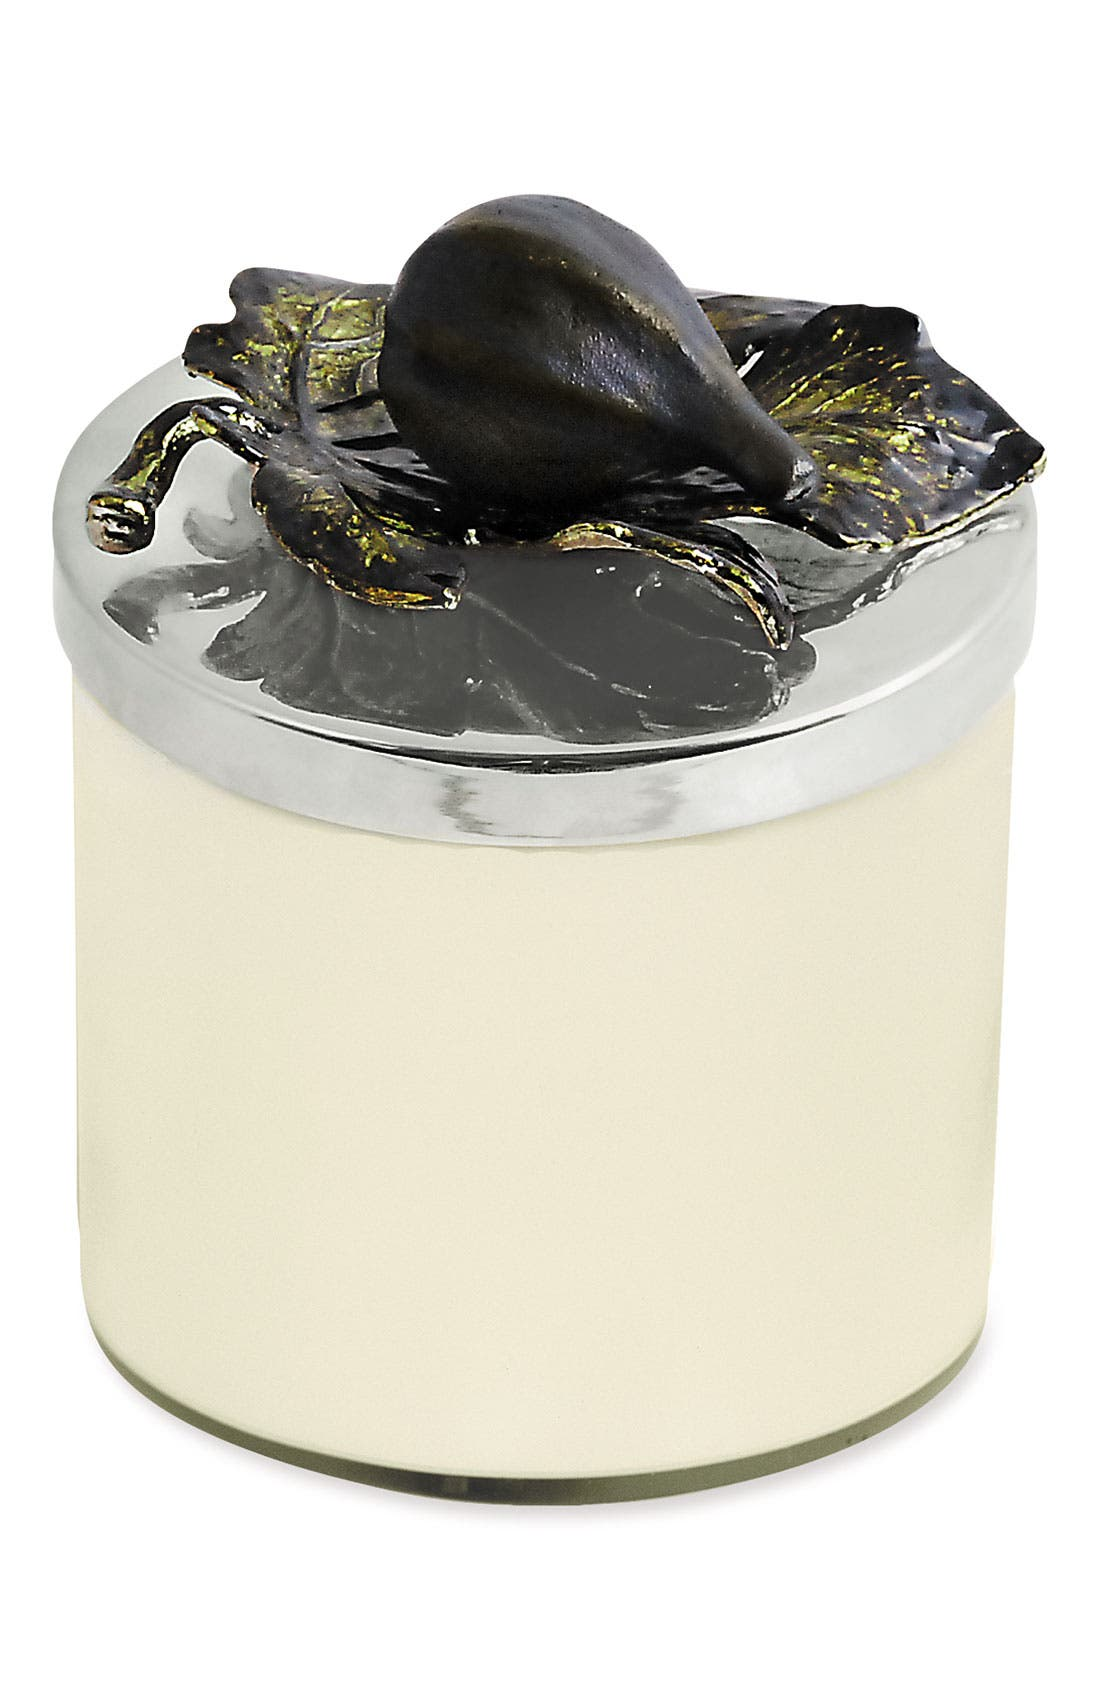 Alternate Image 1 Selected - Michael Aram 'Fig Leaf' Soy Wax Candle